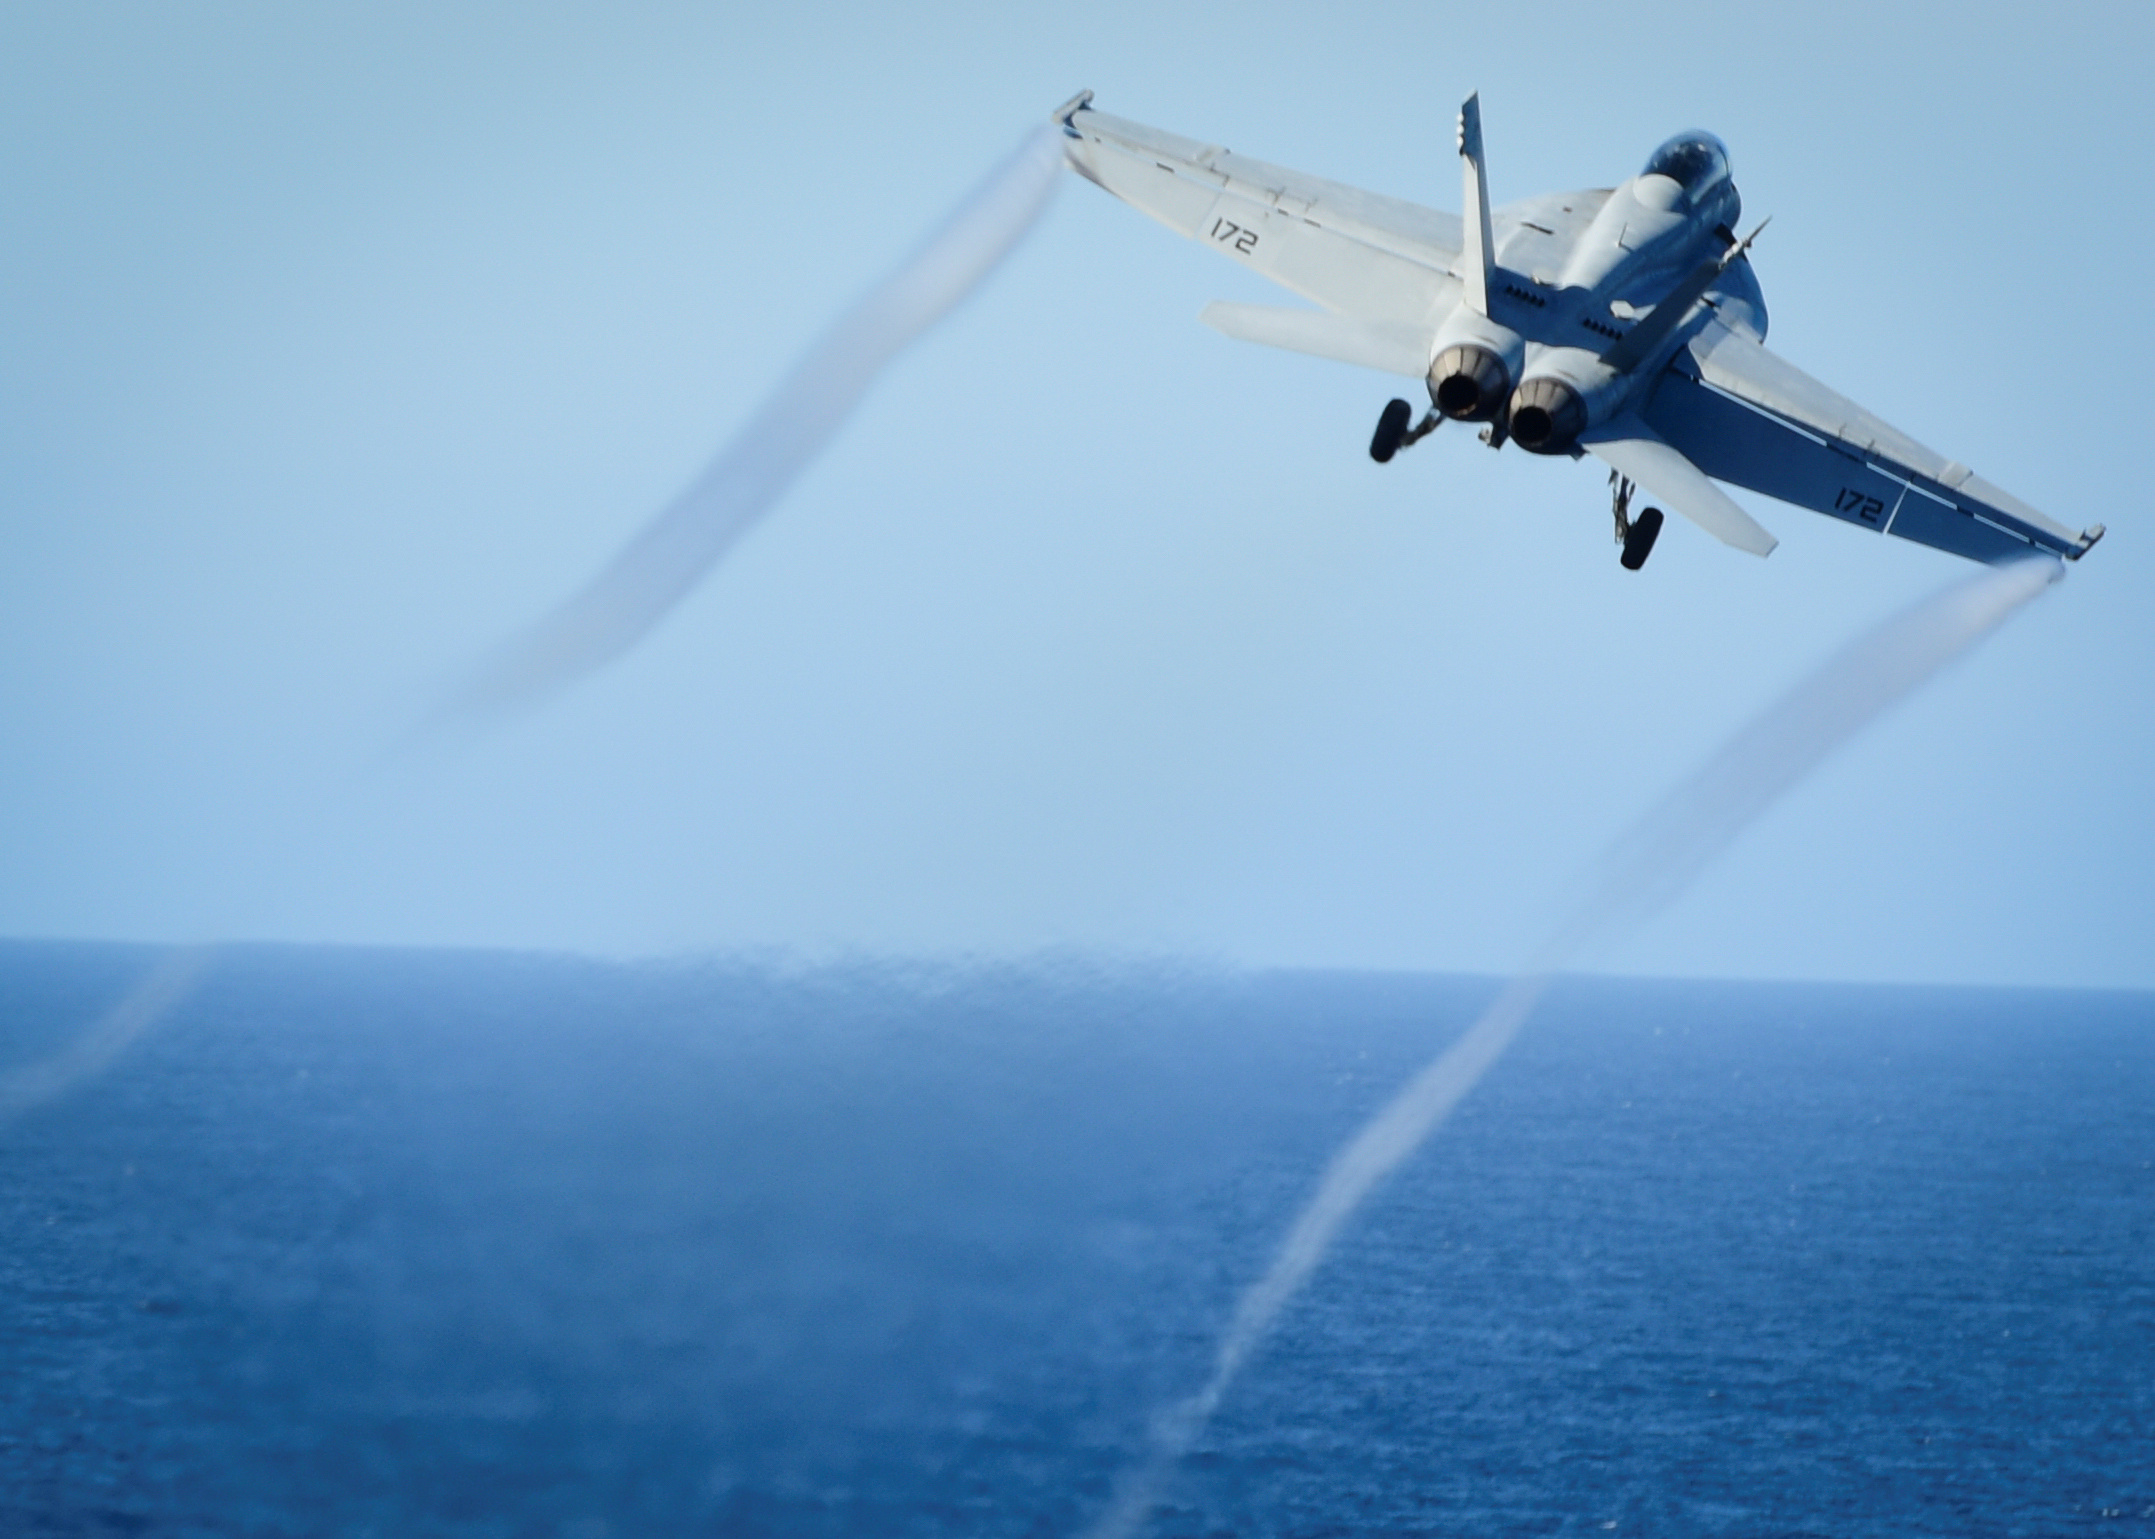 FILE - A Super Hornet takes off from the flight deck of the U.S. Navy aircraft carrier USS Nimitz, Oct. 29, 2016. A Super Hornet reportedly downed a Syrian SU-22 fighter jet Sunday.